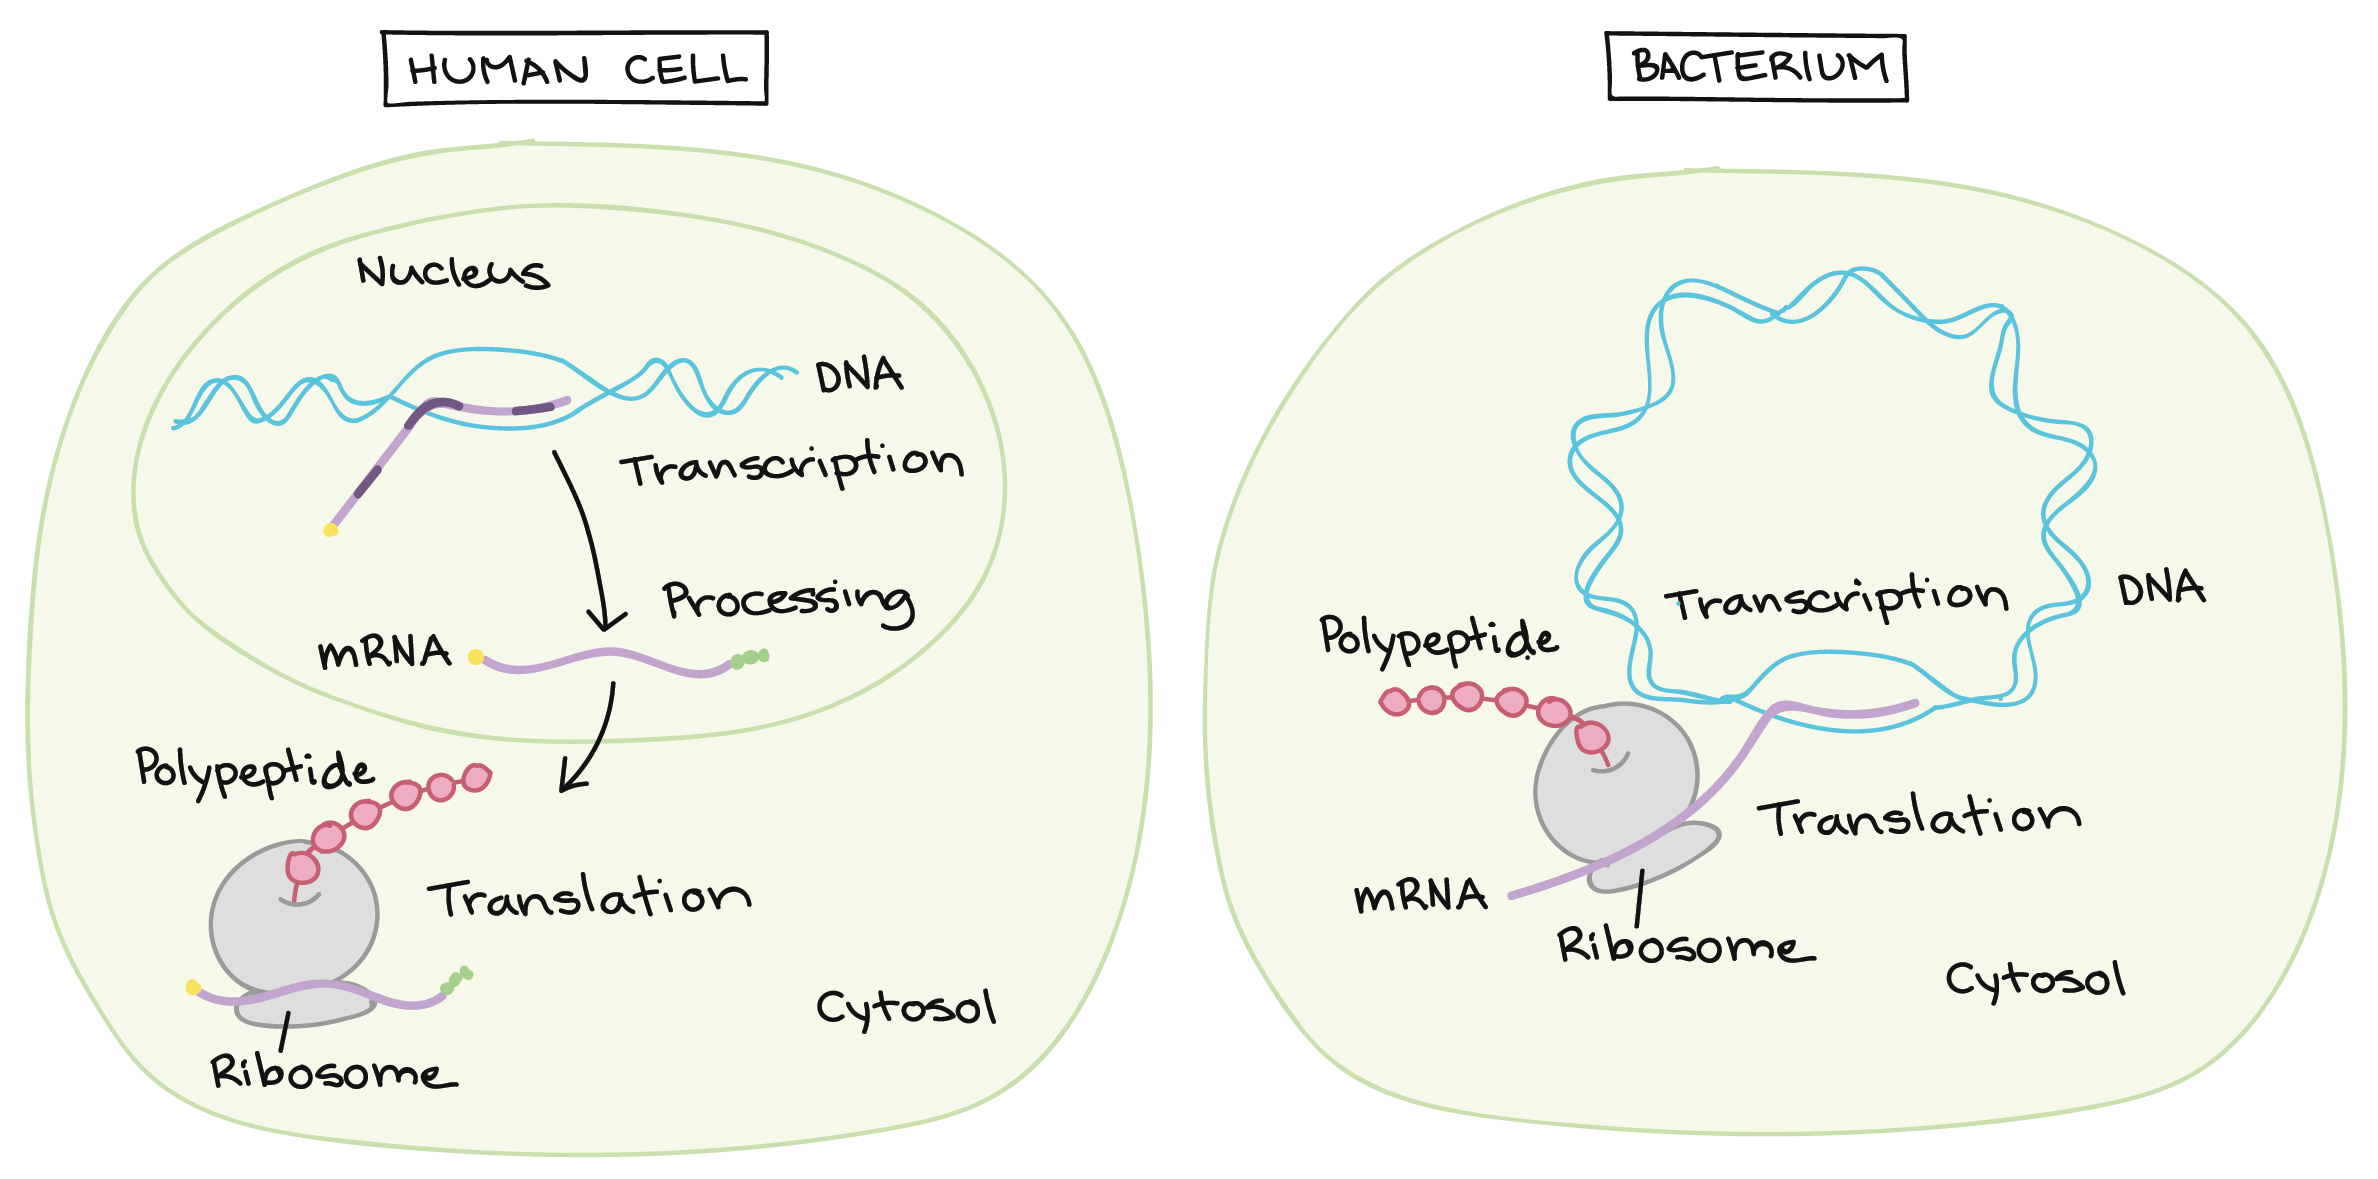 Translate drawing. Dna replication and rna